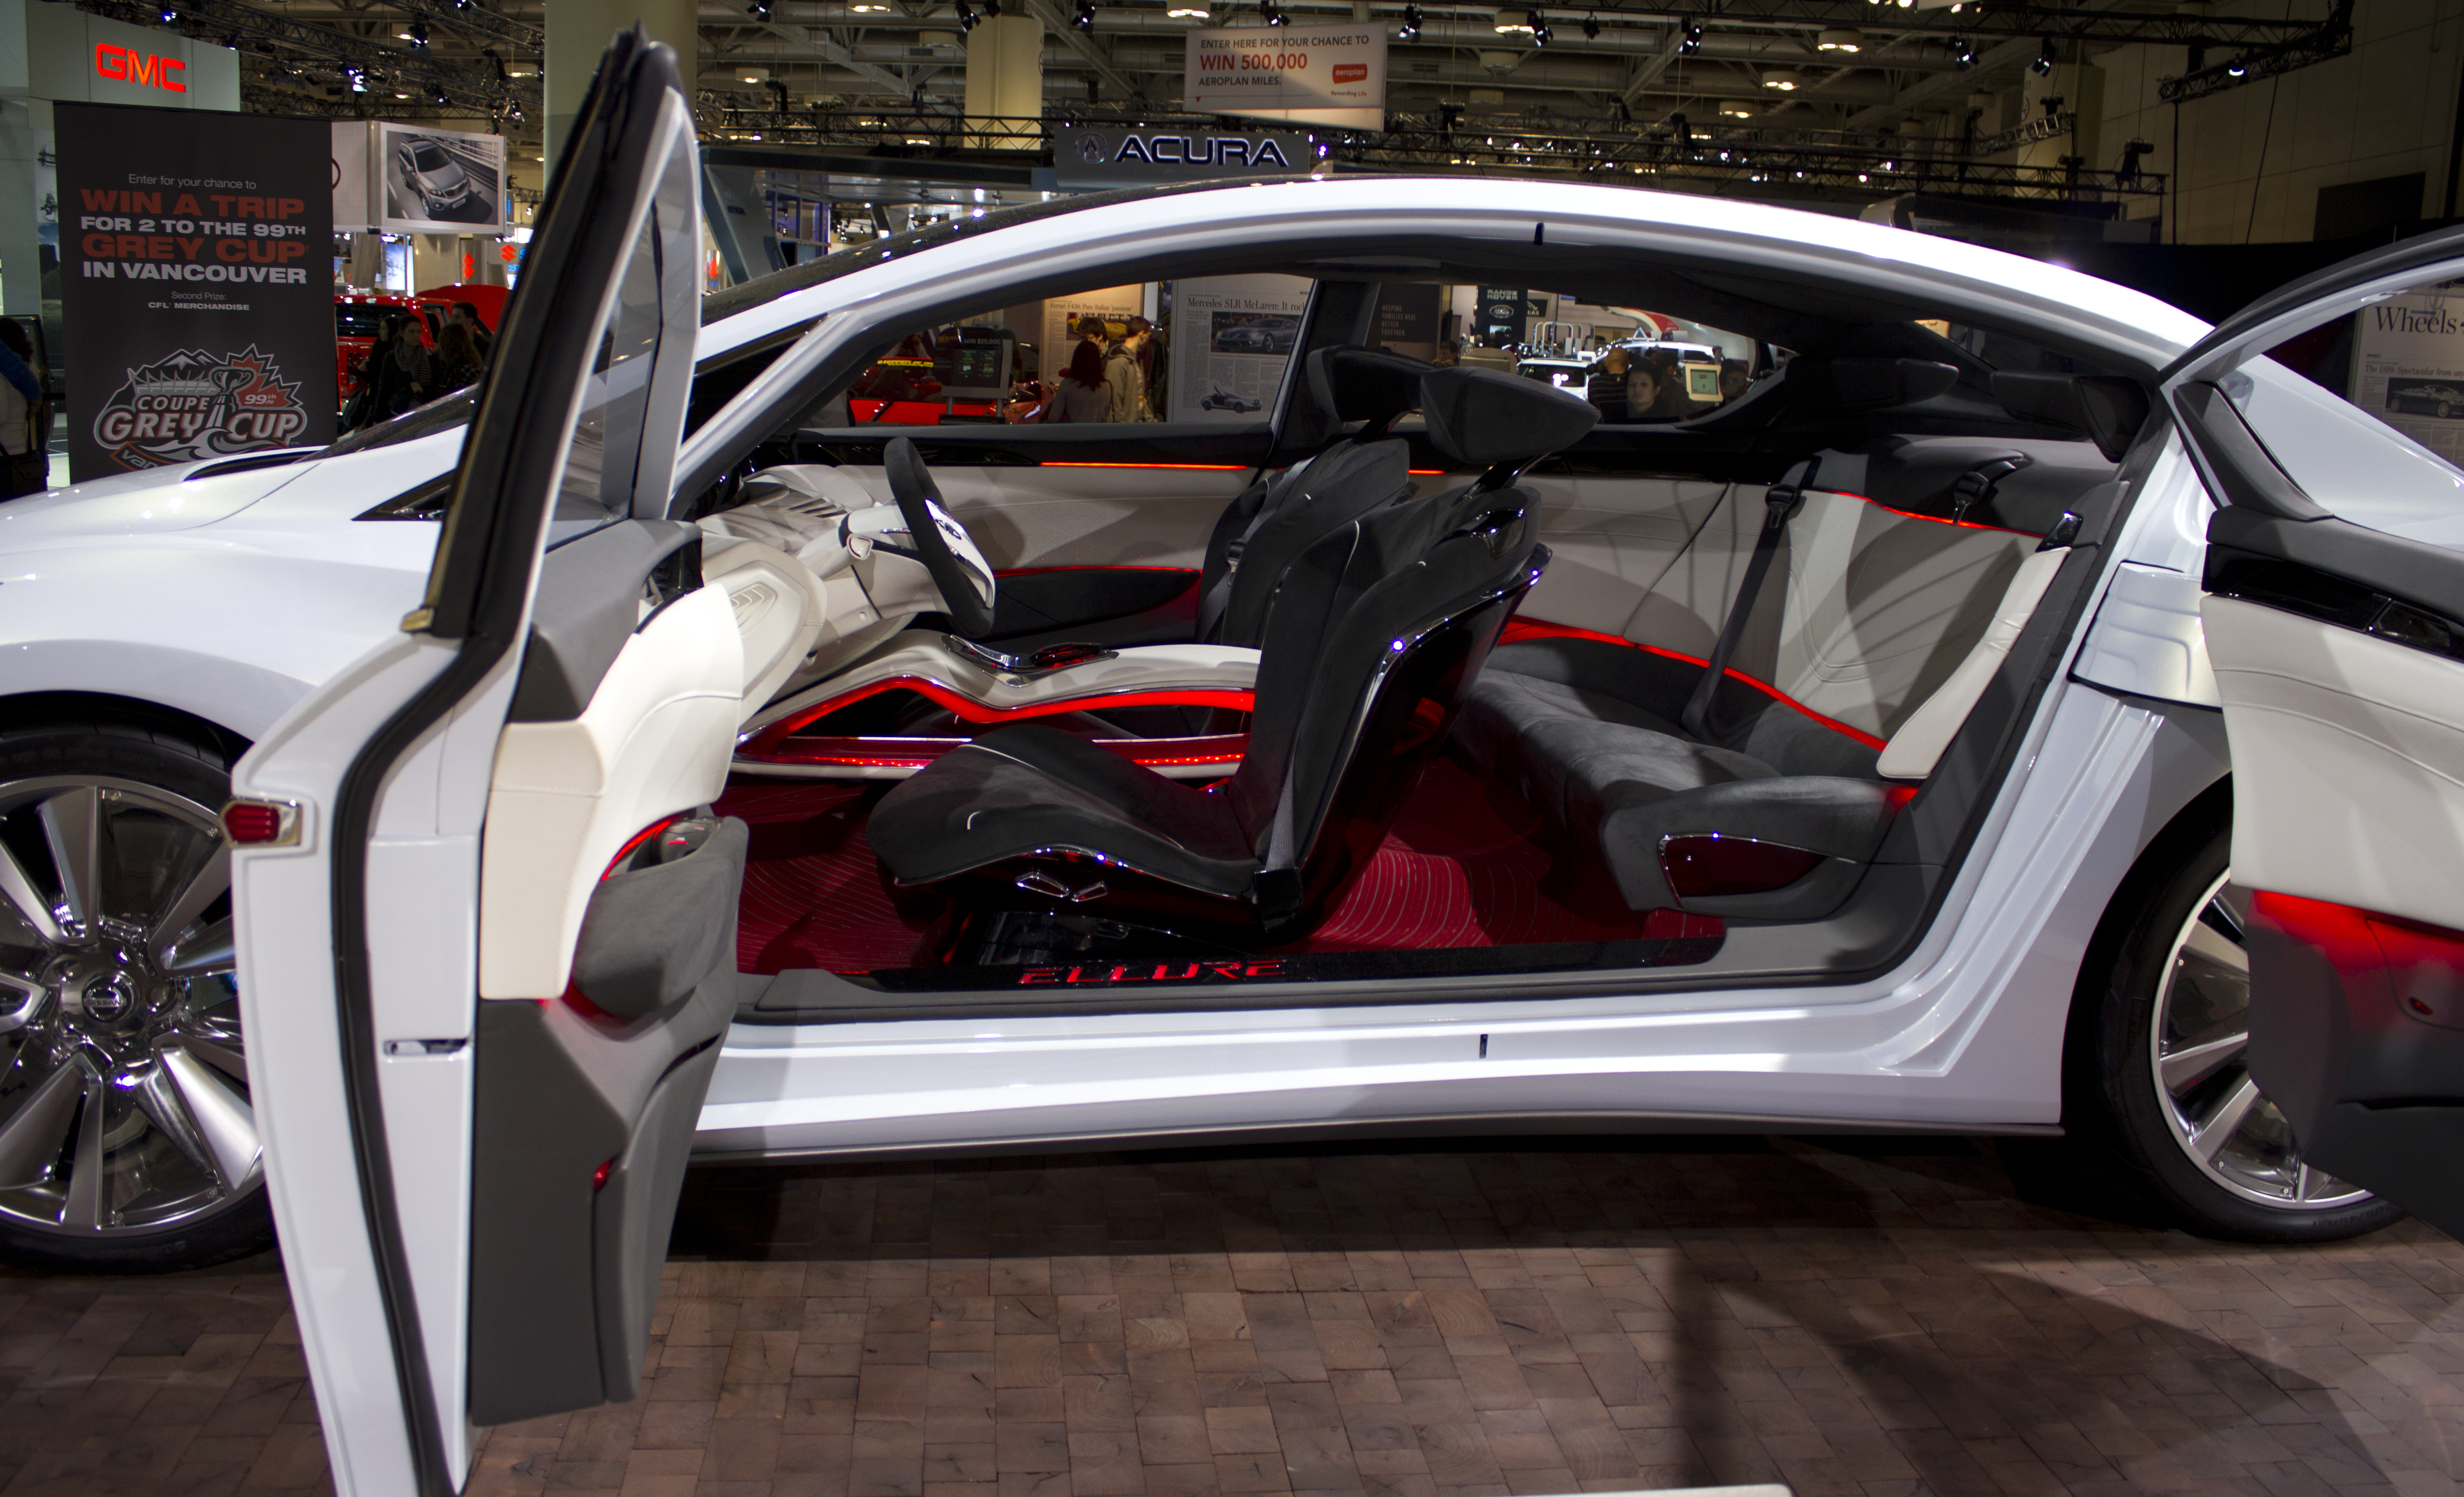 file nissan ellure interior at toronto auto show wikimedia commons. Black Bedroom Furniture Sets. Home Design Ideas